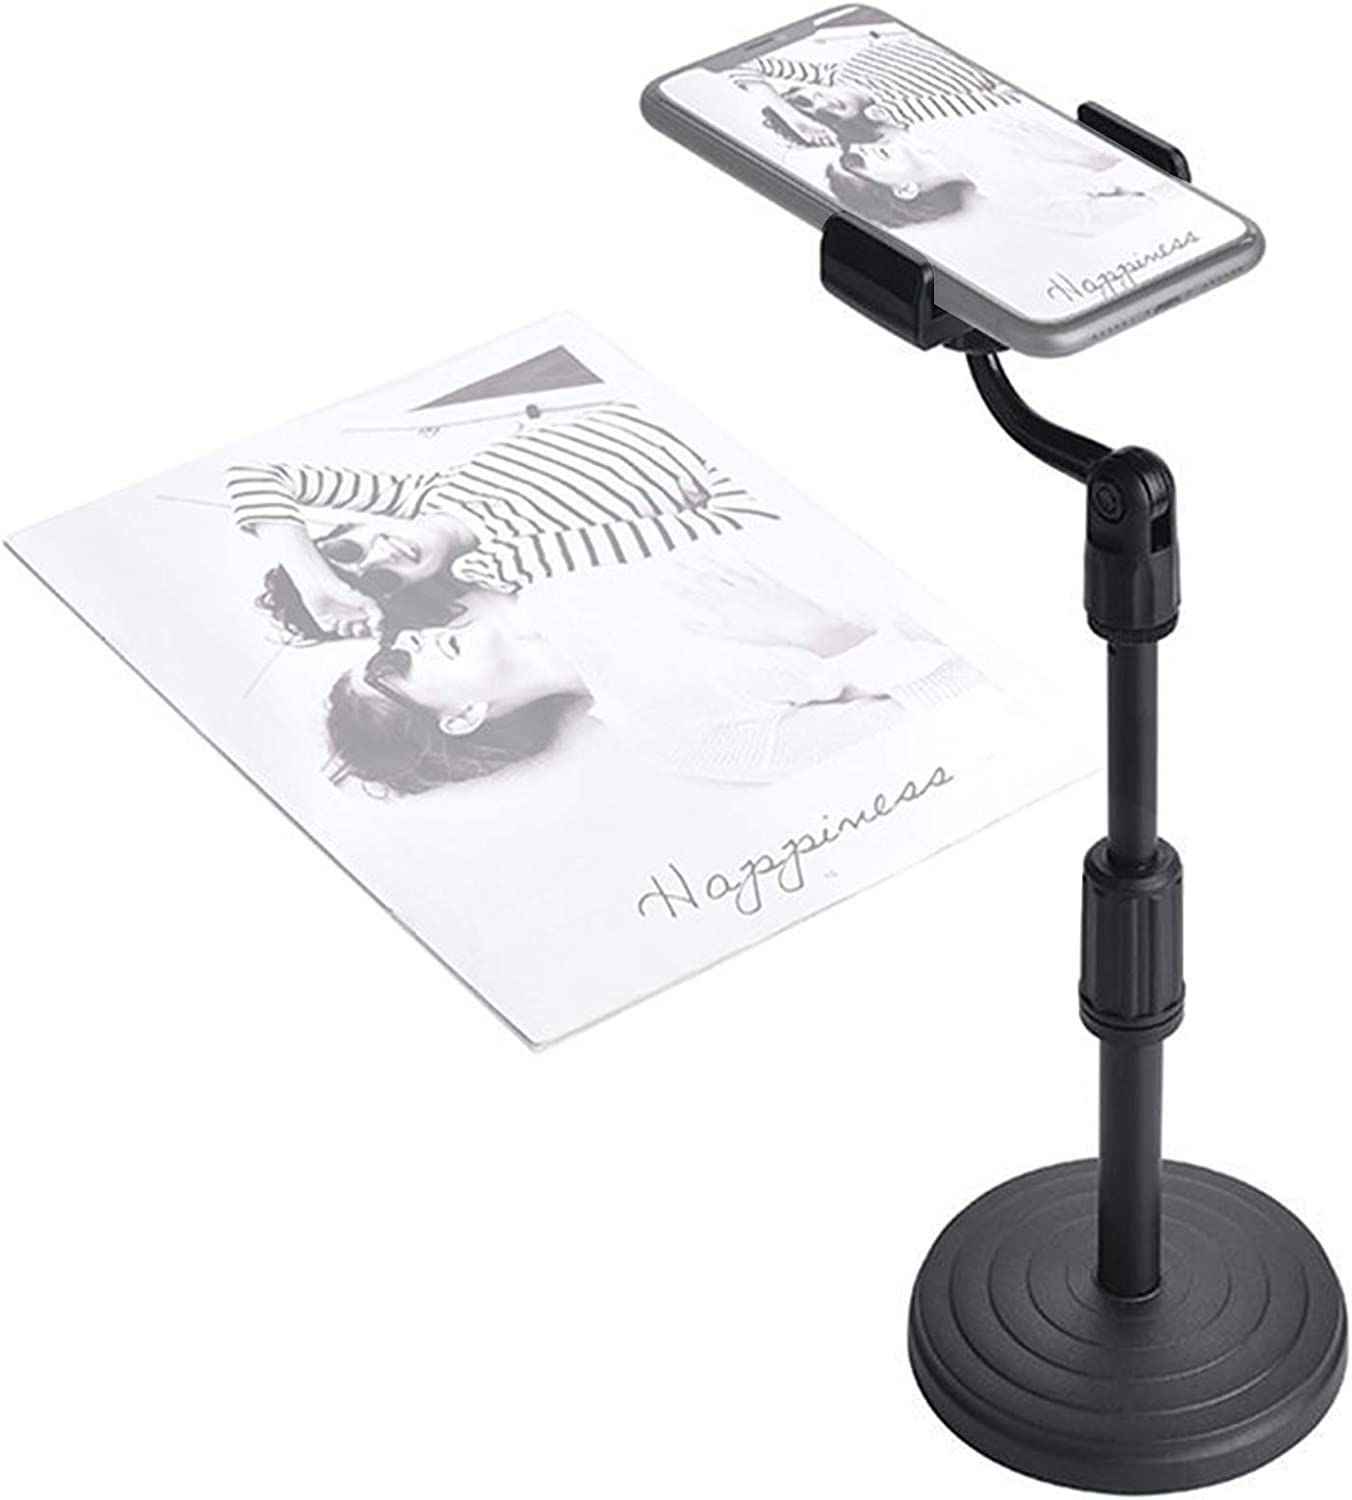 Photo Copy Stand, Pico Projector Stand with Phone Clamp, Cell Phone Stand Table Top Teaching Online Stand for Live Streaming and Online Video and Food Crafting Demo Drawing Sketching Recording